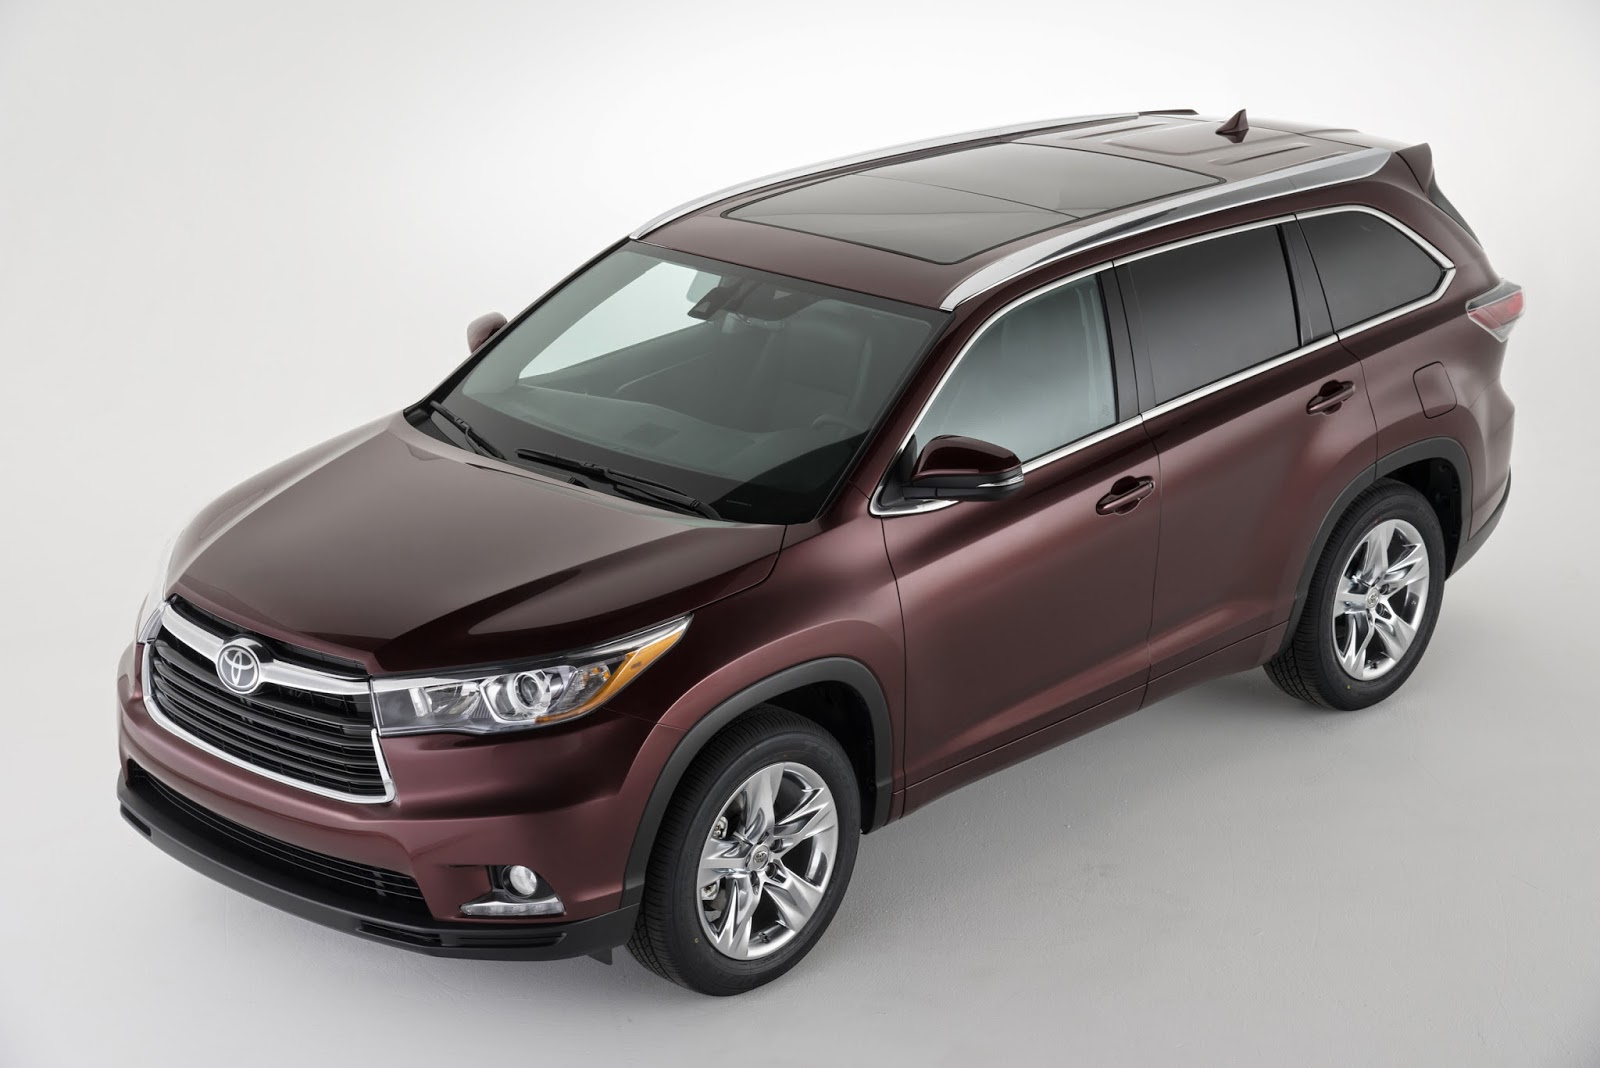 Front 3/4 view of the 2014 Toyota Highlander